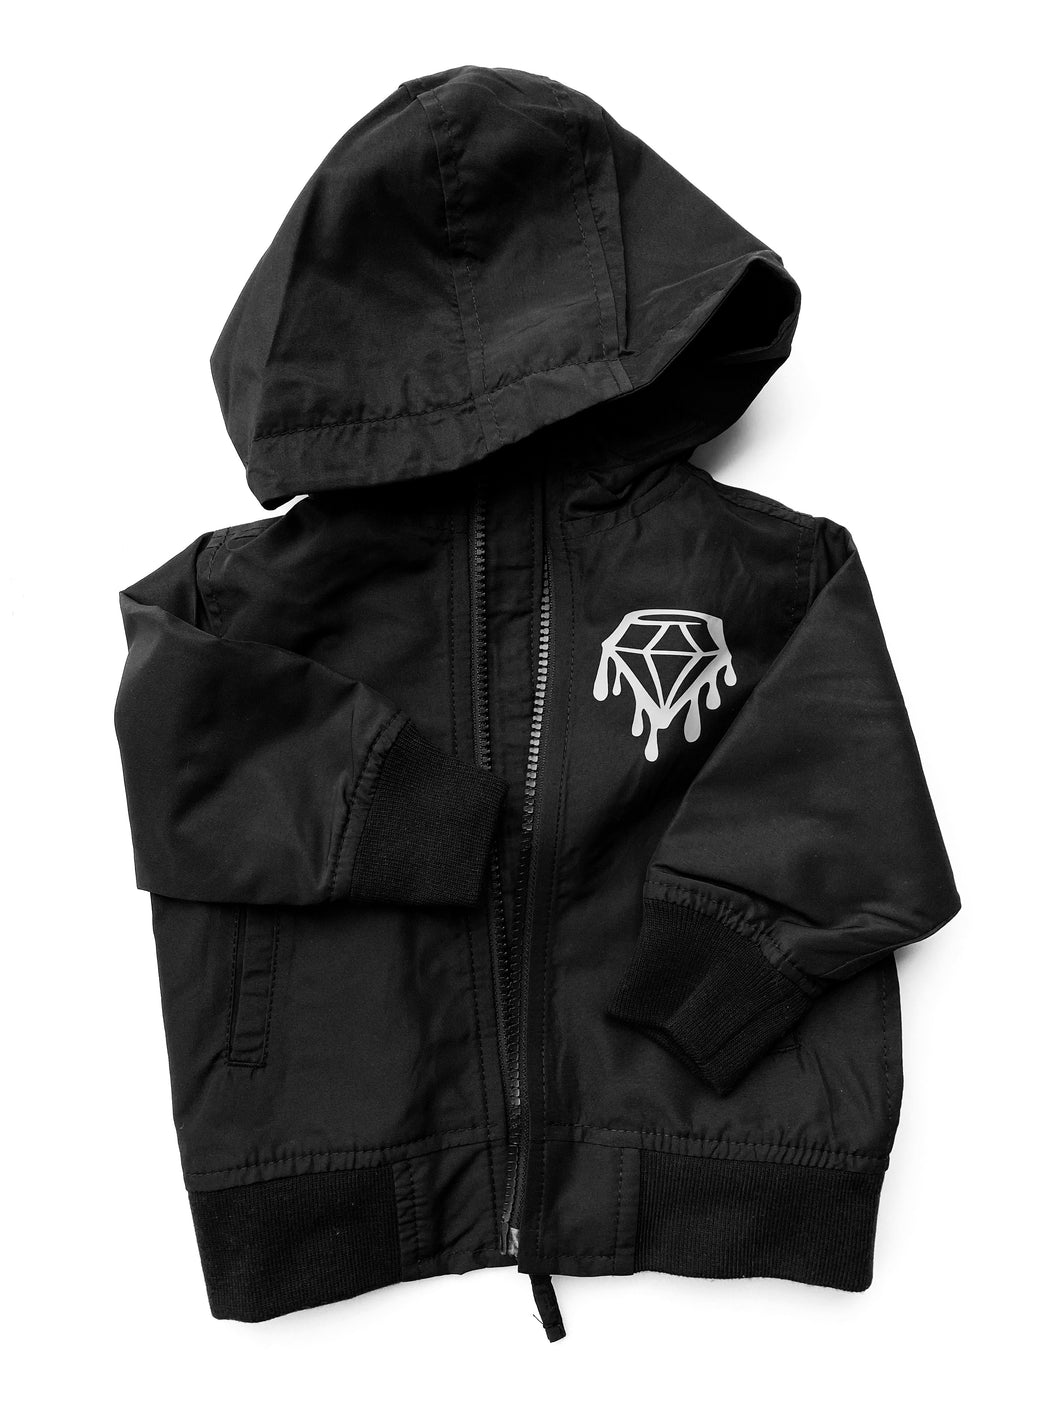 Kids Lined Windbreaker